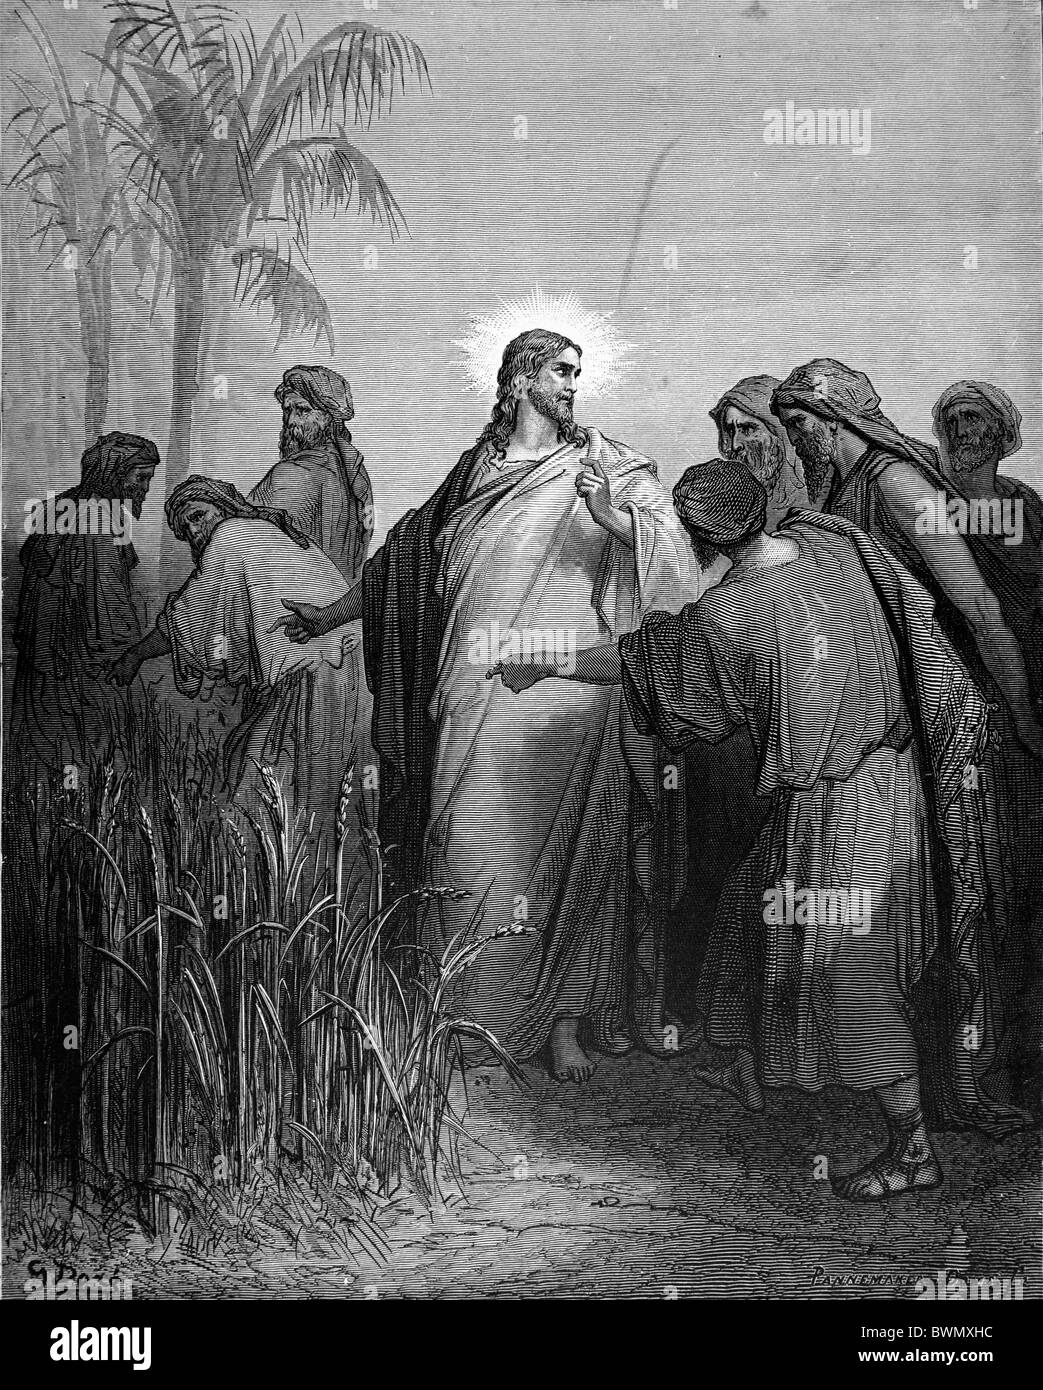 gustave doré jesus and his disciples walk through the cornfield